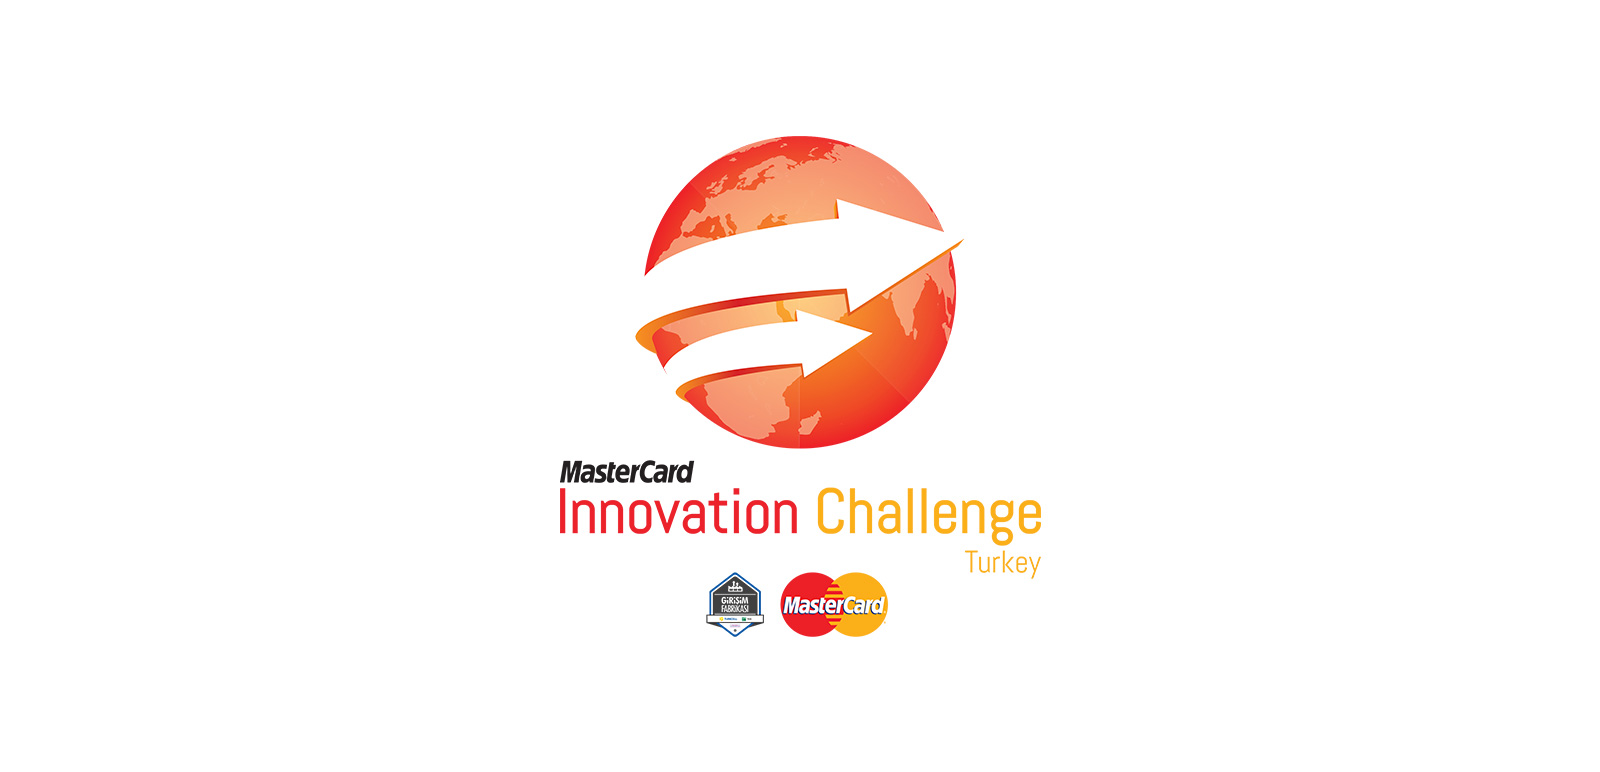 MasterCard Innovation Challenge Logo, Graphic 1